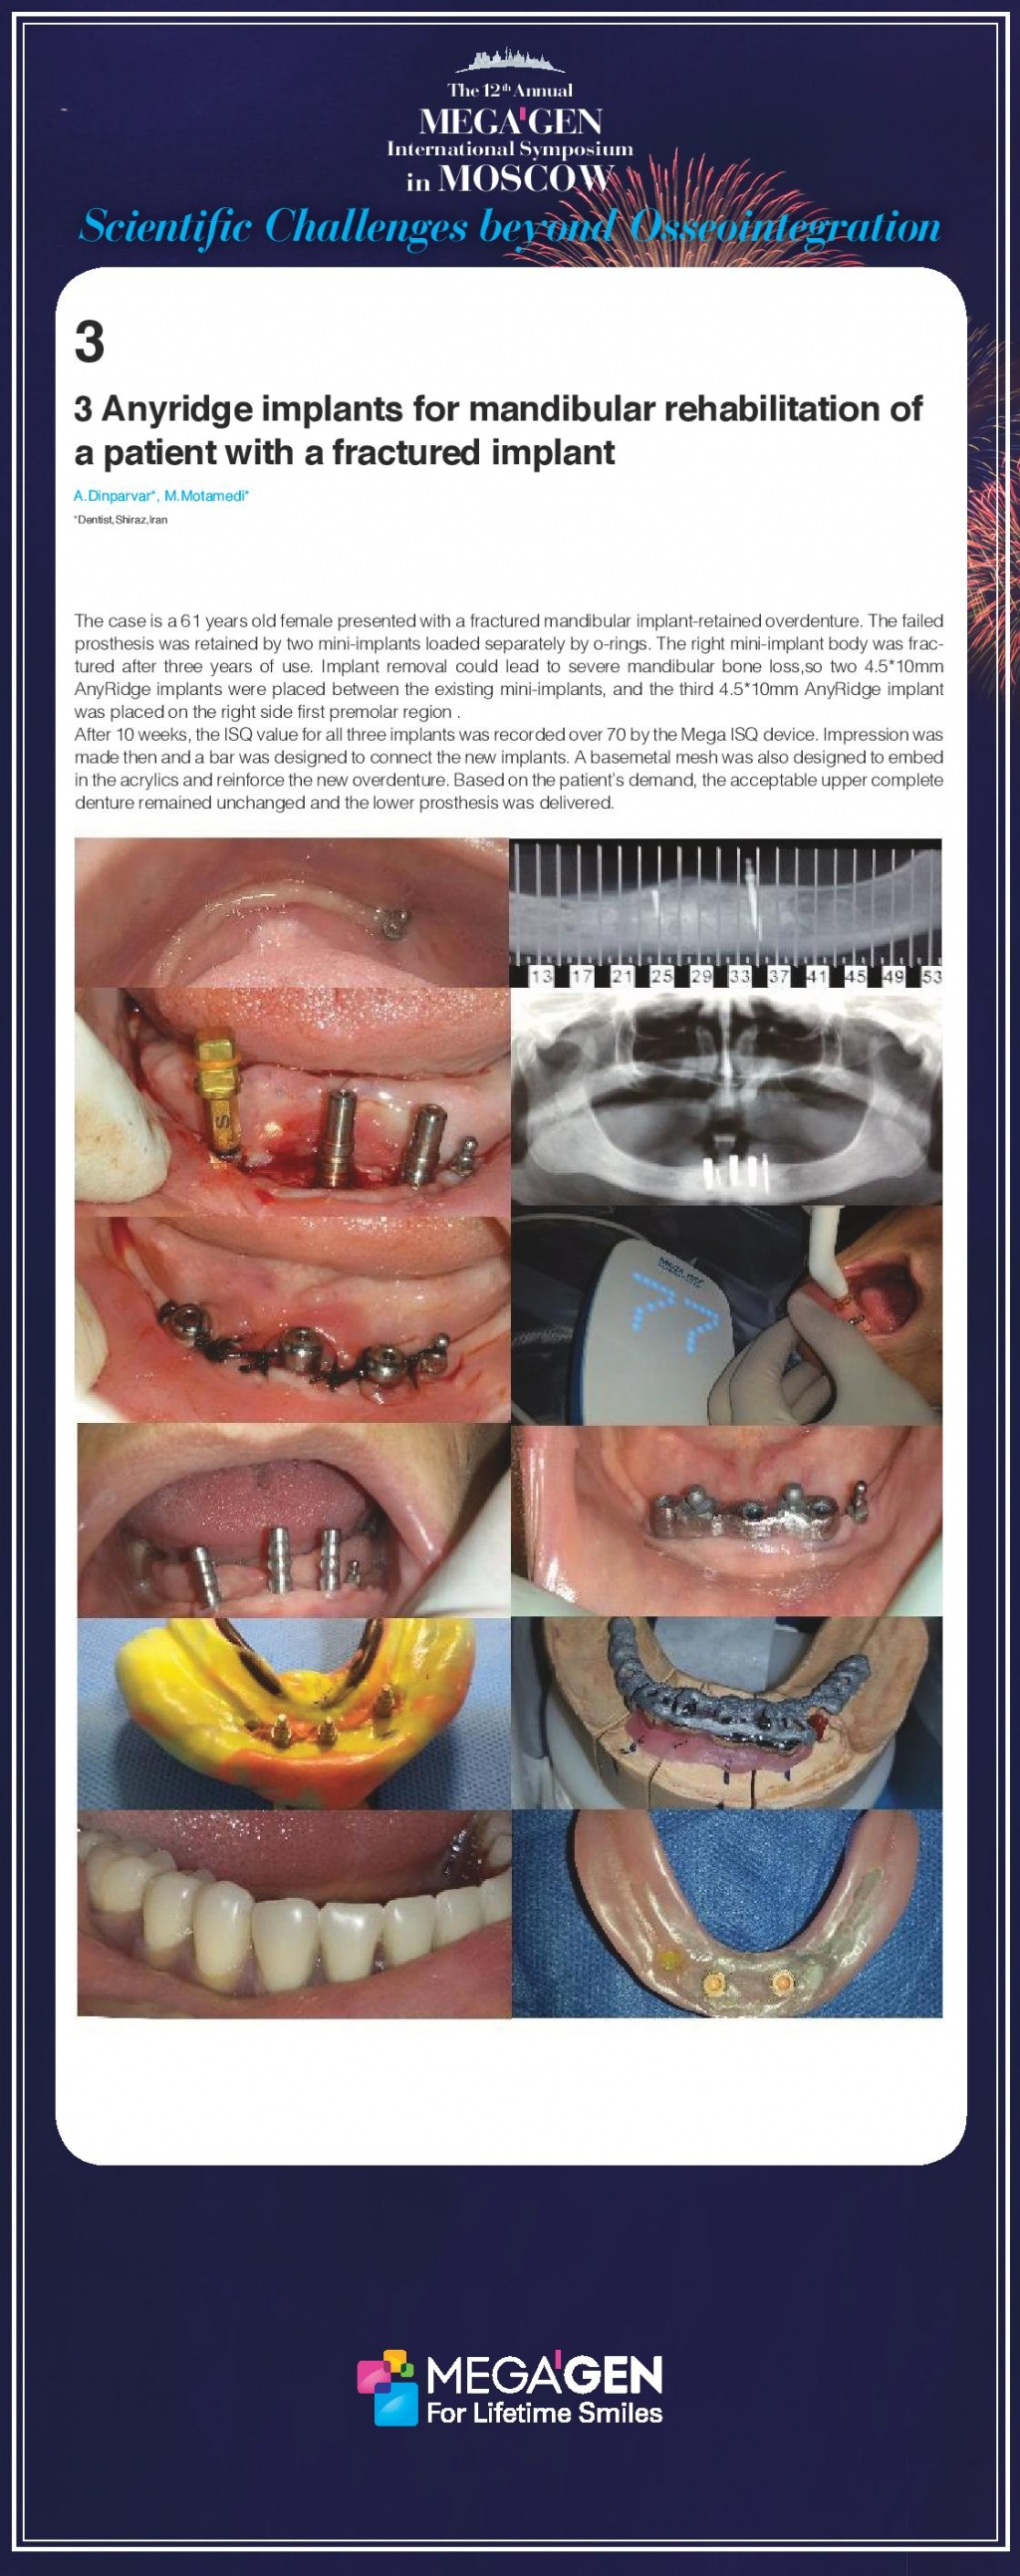 Anyridge implants for mandibular rehabilitation of a patient with a fractured implant